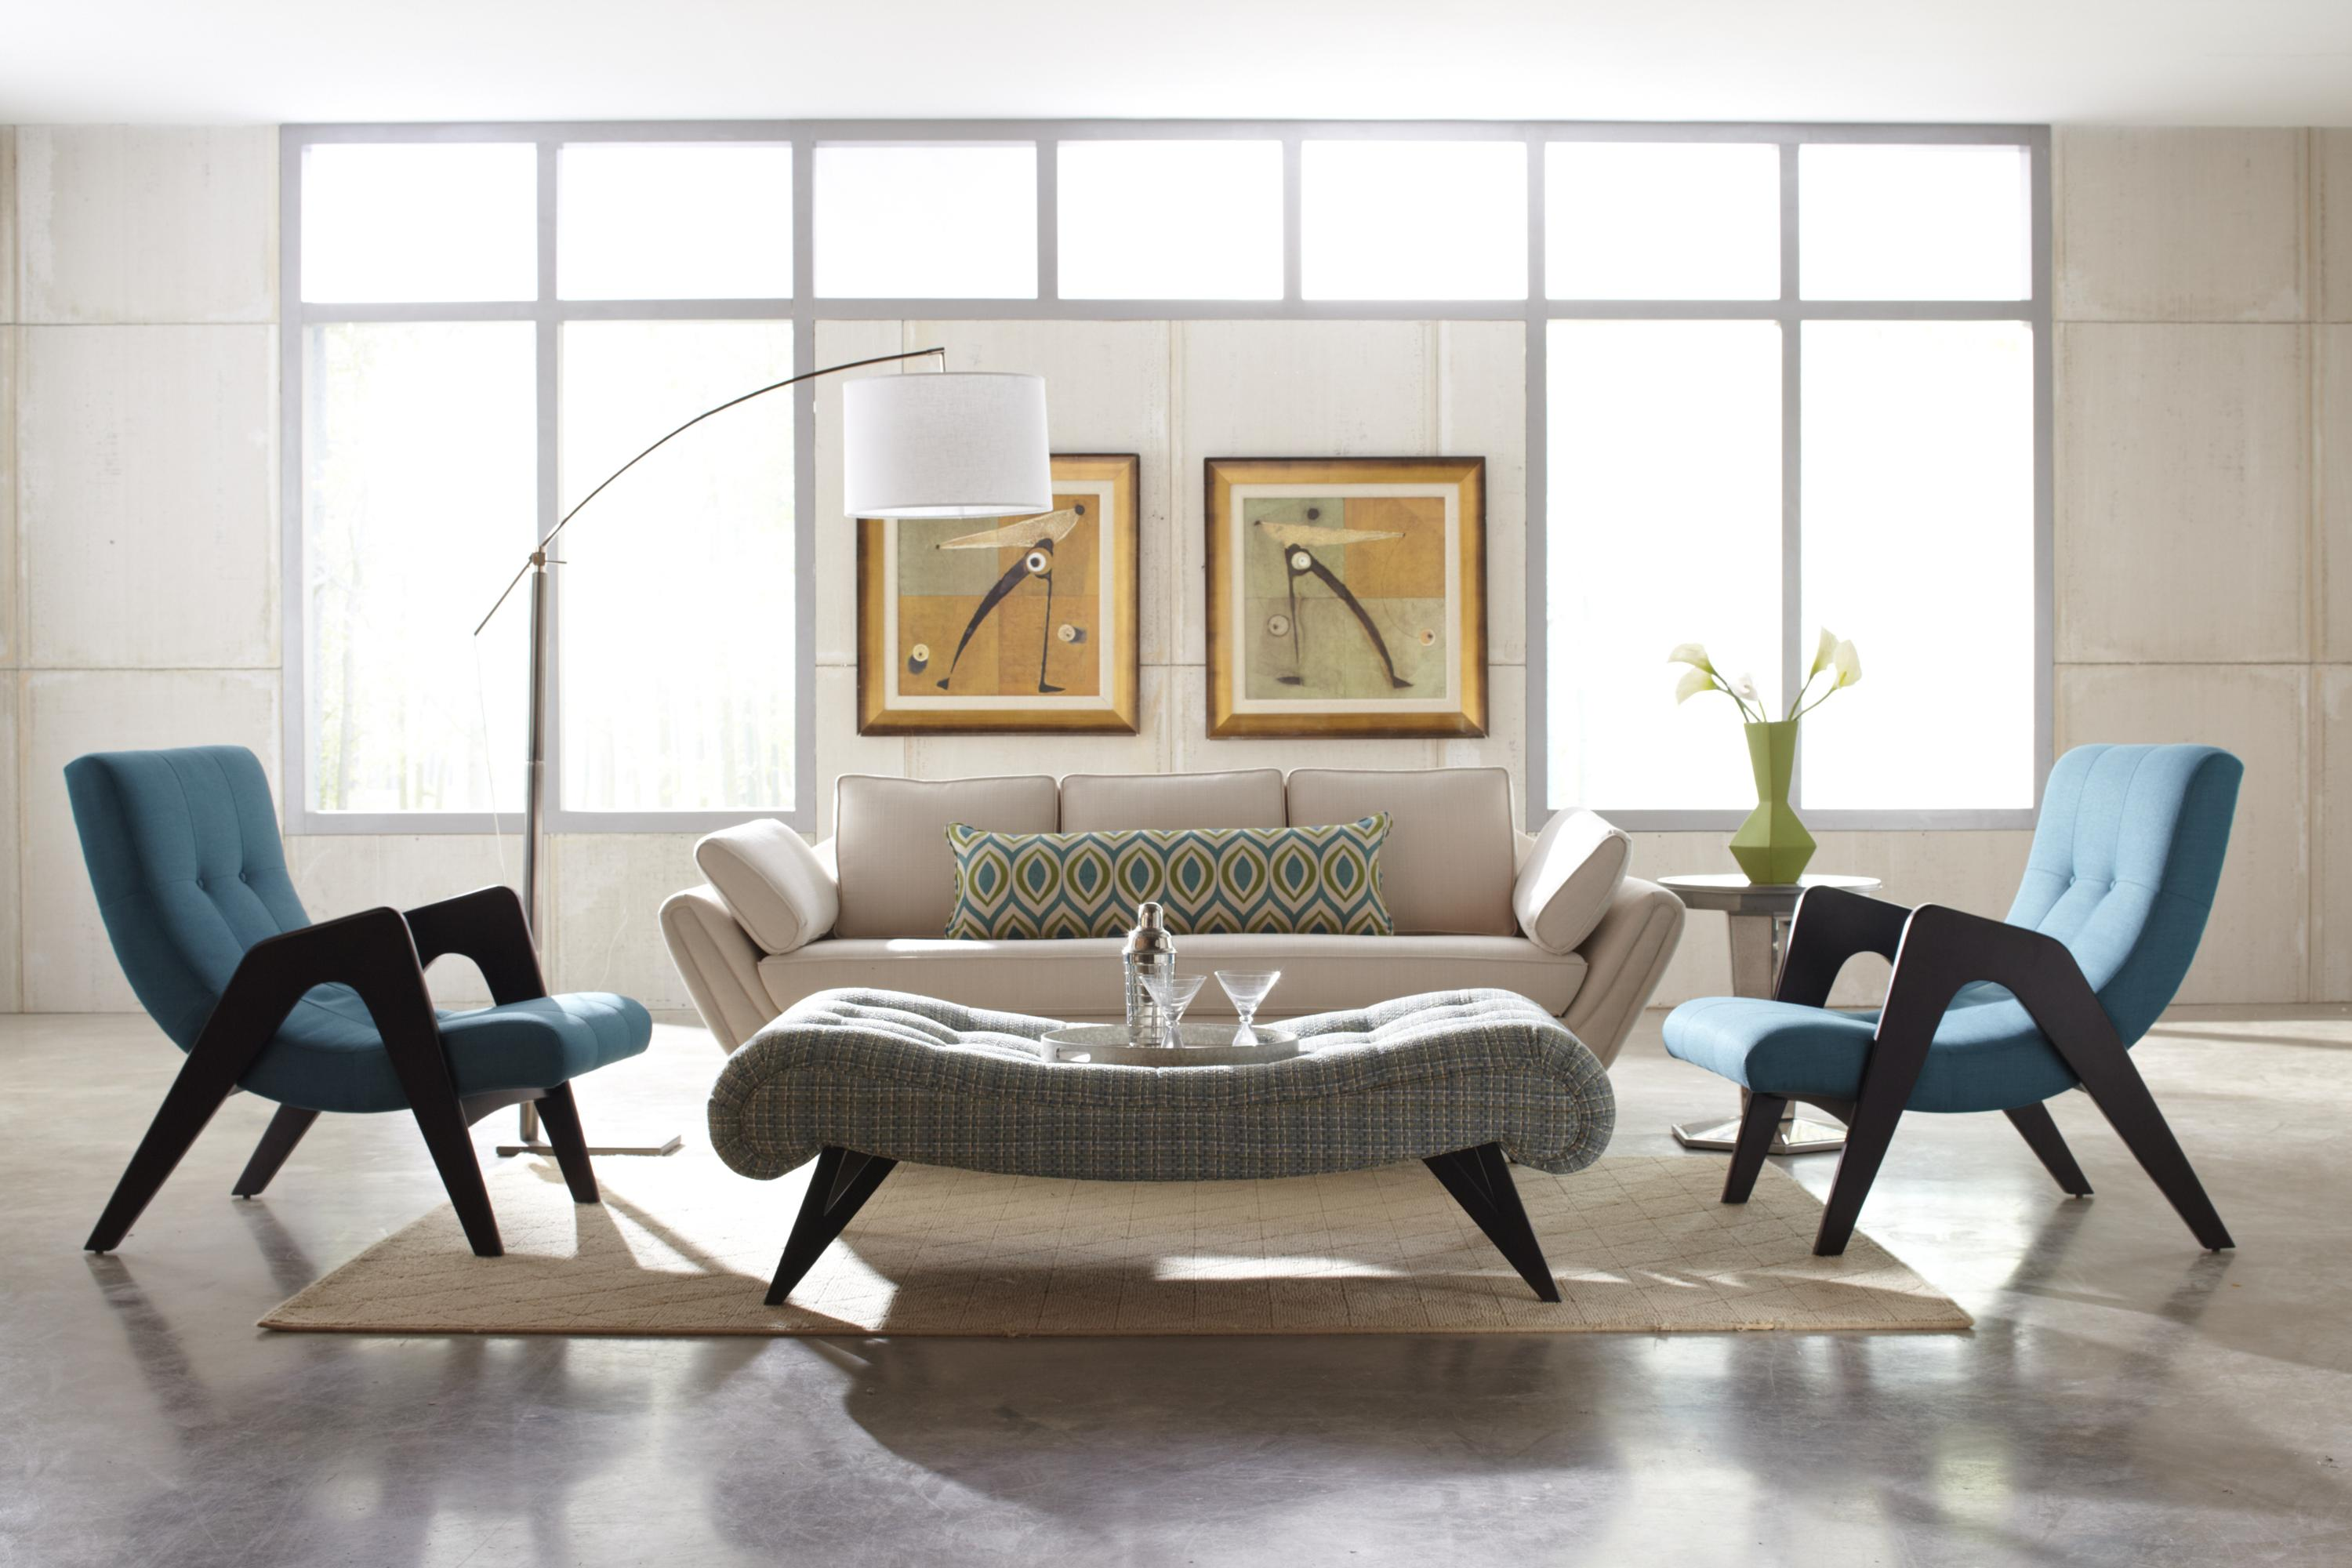 Cool Creation Small Armchairs For Living Room Perfect Window Shade Interior  Collection Seating